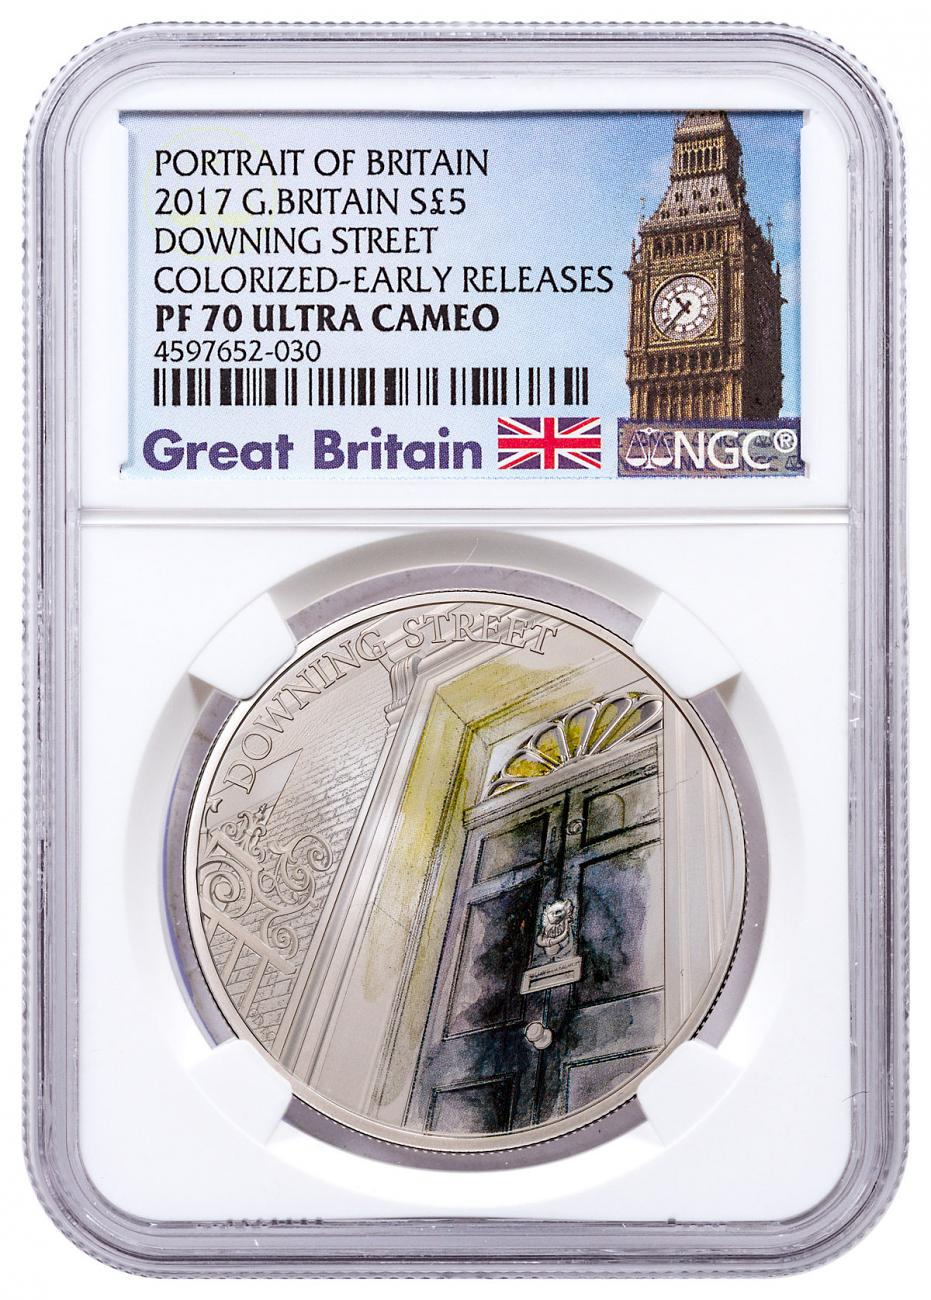 2017 Great Britain Portrait of Britain - Downing Street Silver Colorized Proof £5 Coin NGC PF70 UC ER Exclusive Big Ben Label